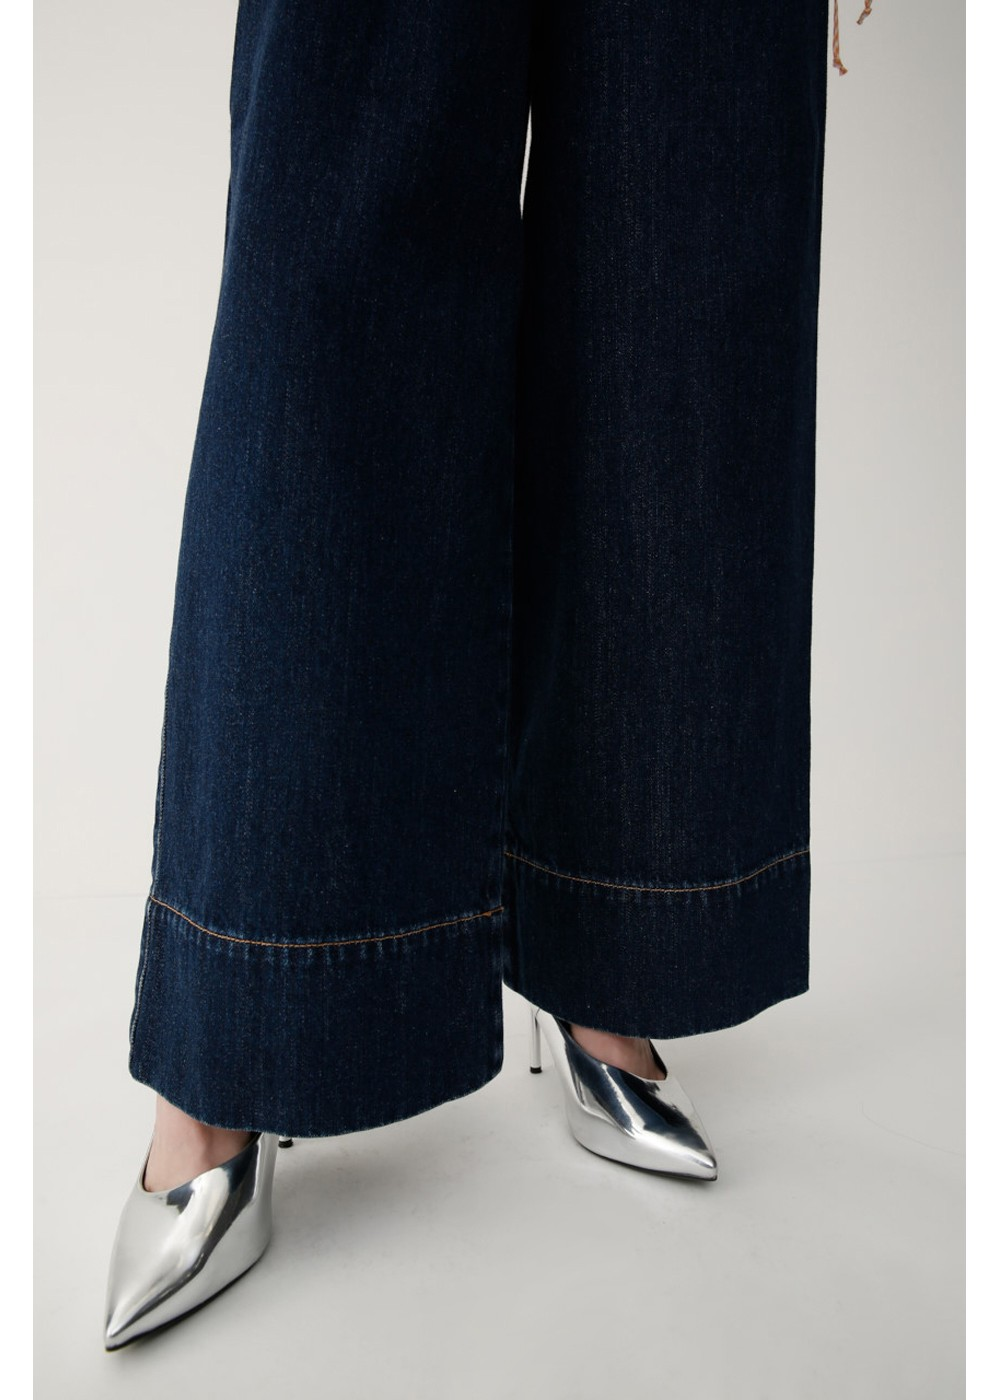 【最大70%OFF】DRAWSTRING WIDE DENIM|D/BLU|デニムパンツ|MOUSSY